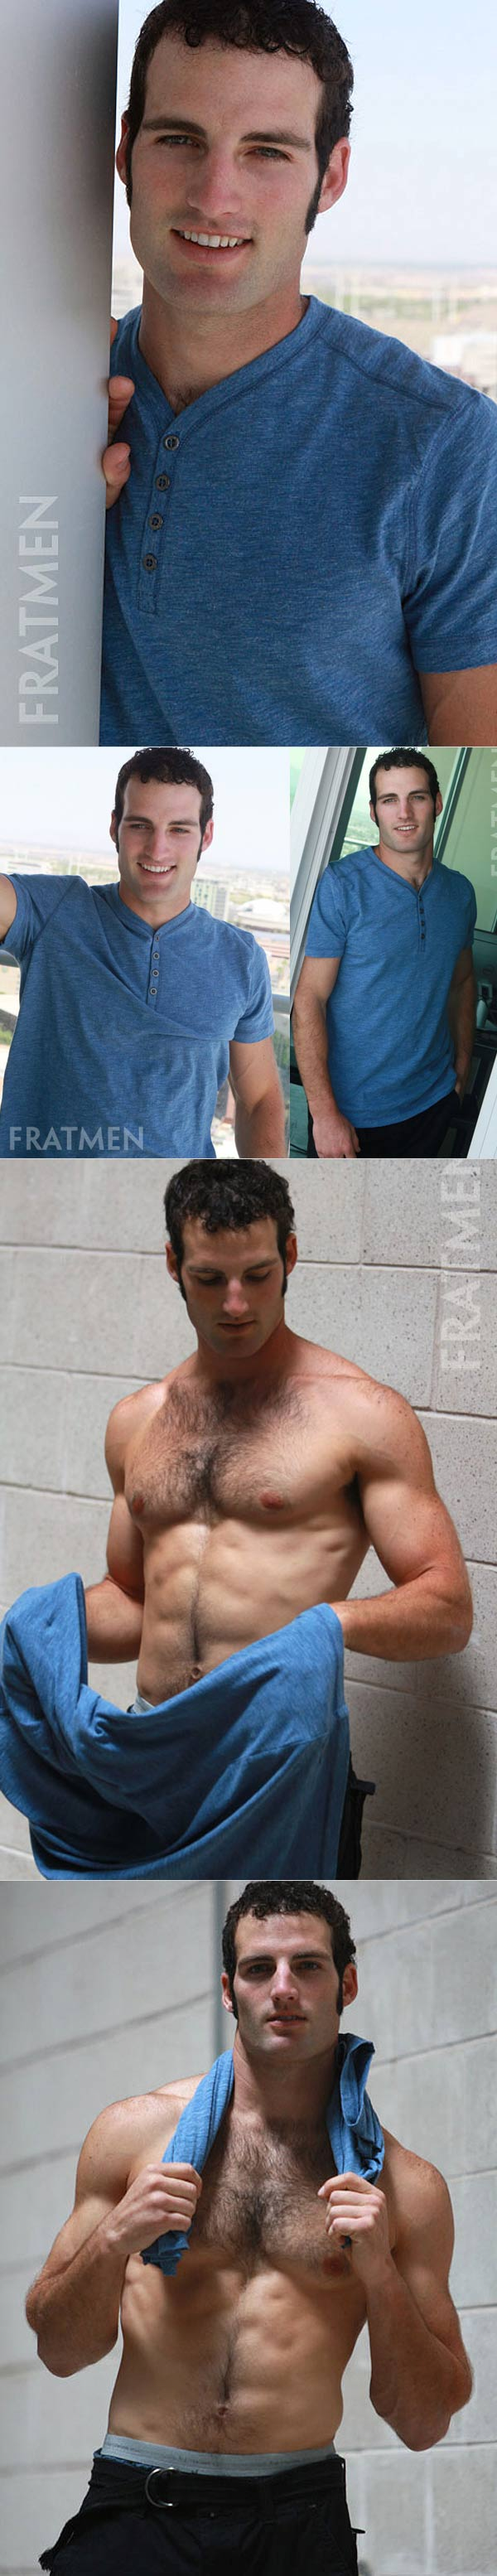 Keagan (Up-Close) at Fratmen.tv